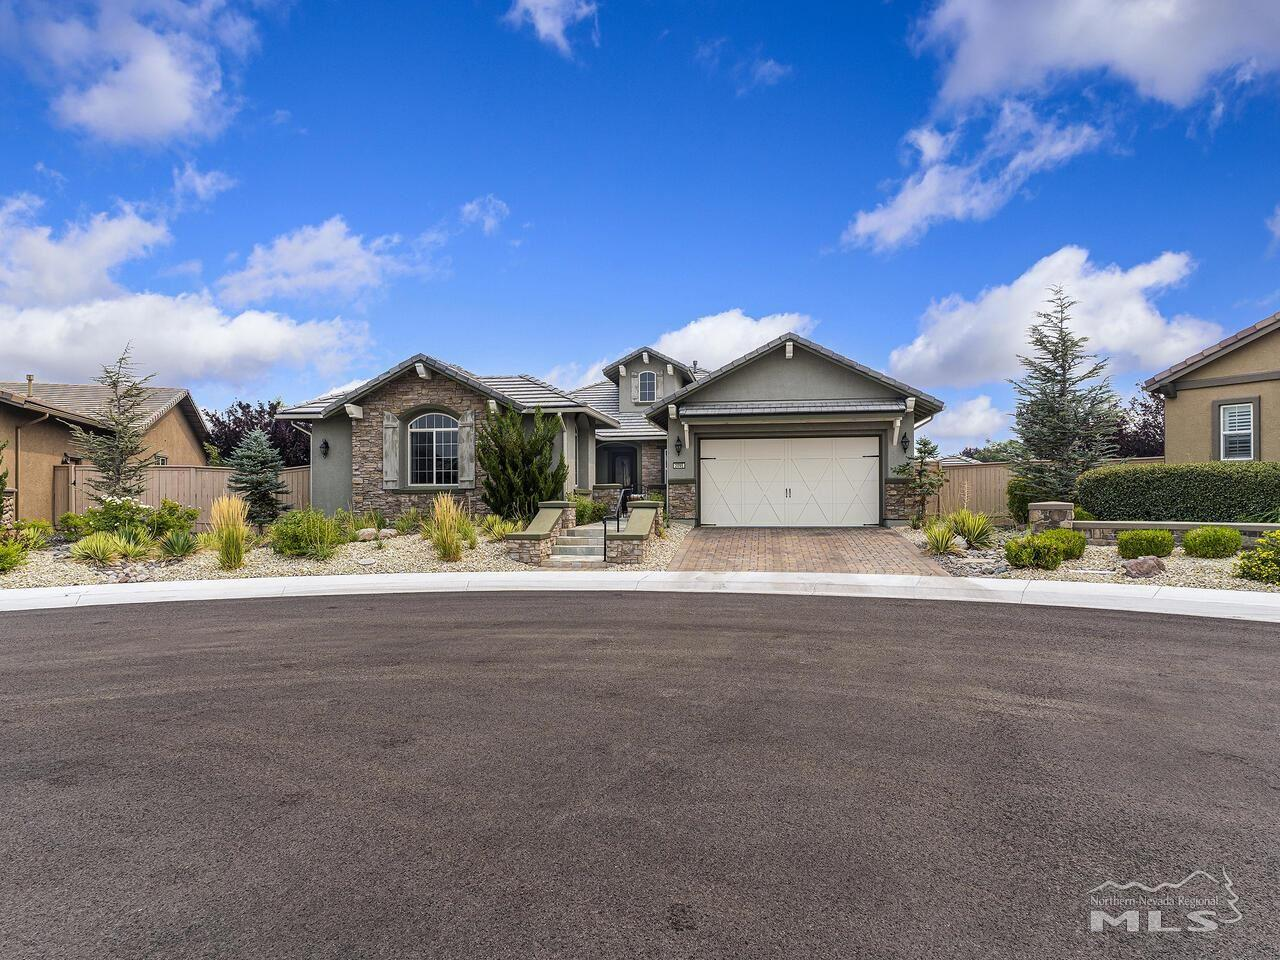 Image for 2095 Altair, Reno, NV 89521